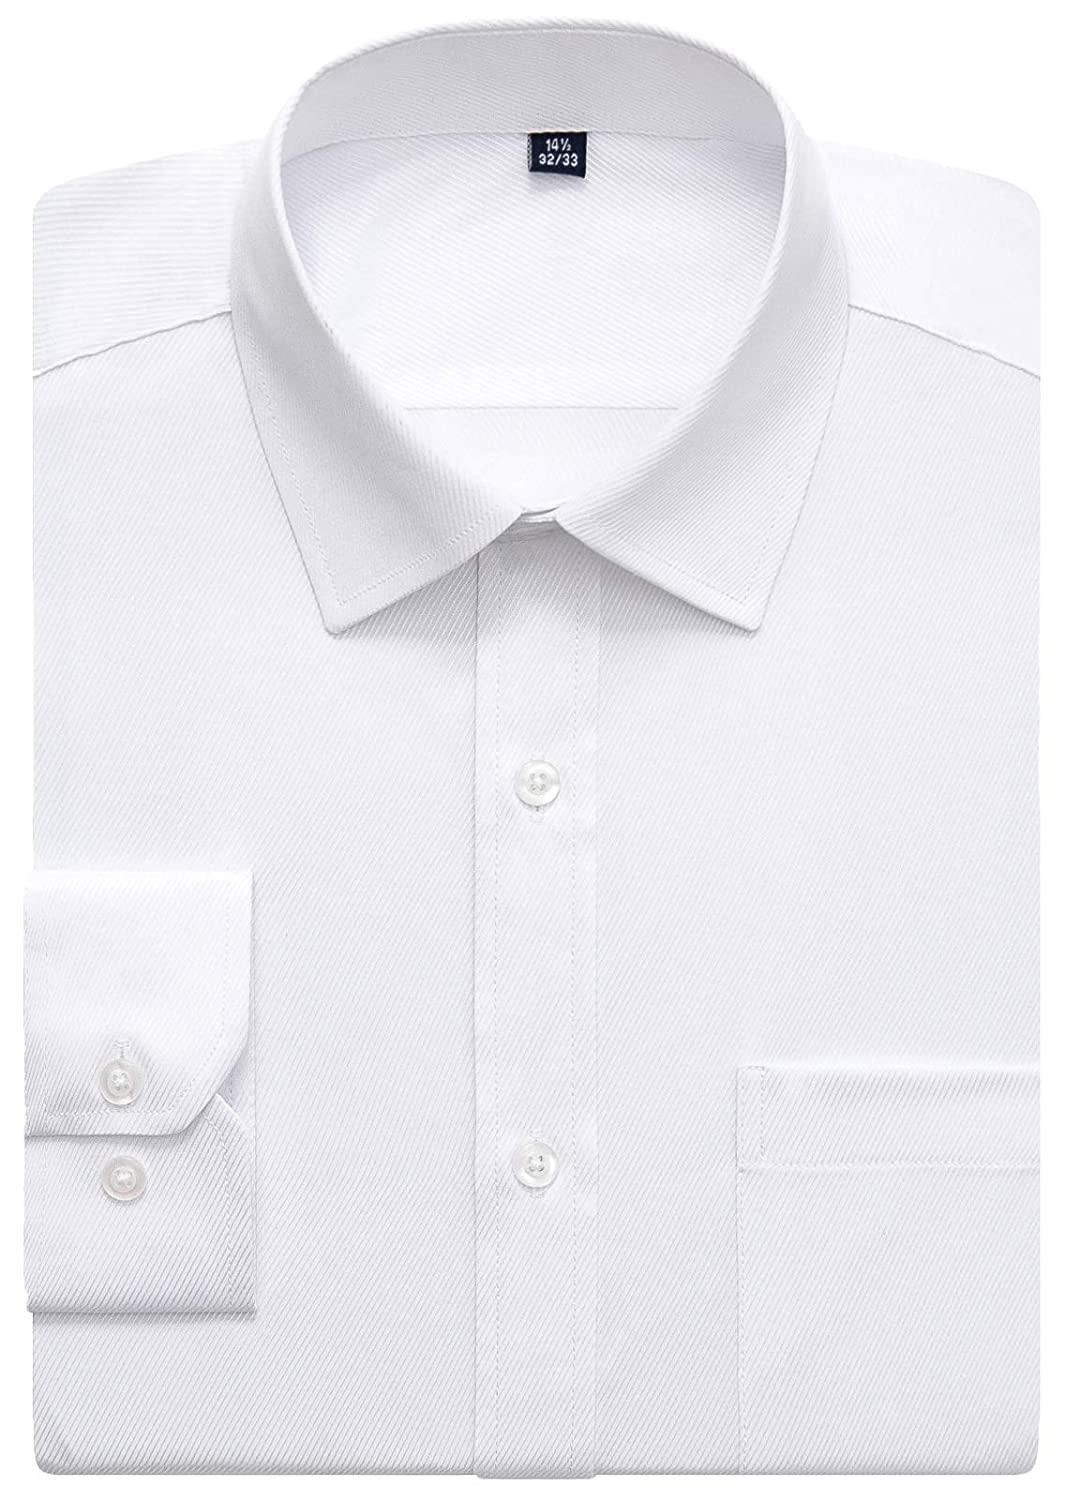 208eb28221e7 Amazon.com: J.VER Men's Business Dress Shirts Regular Fit Solid Color Long  Sleeve Spread Collar: Clothing